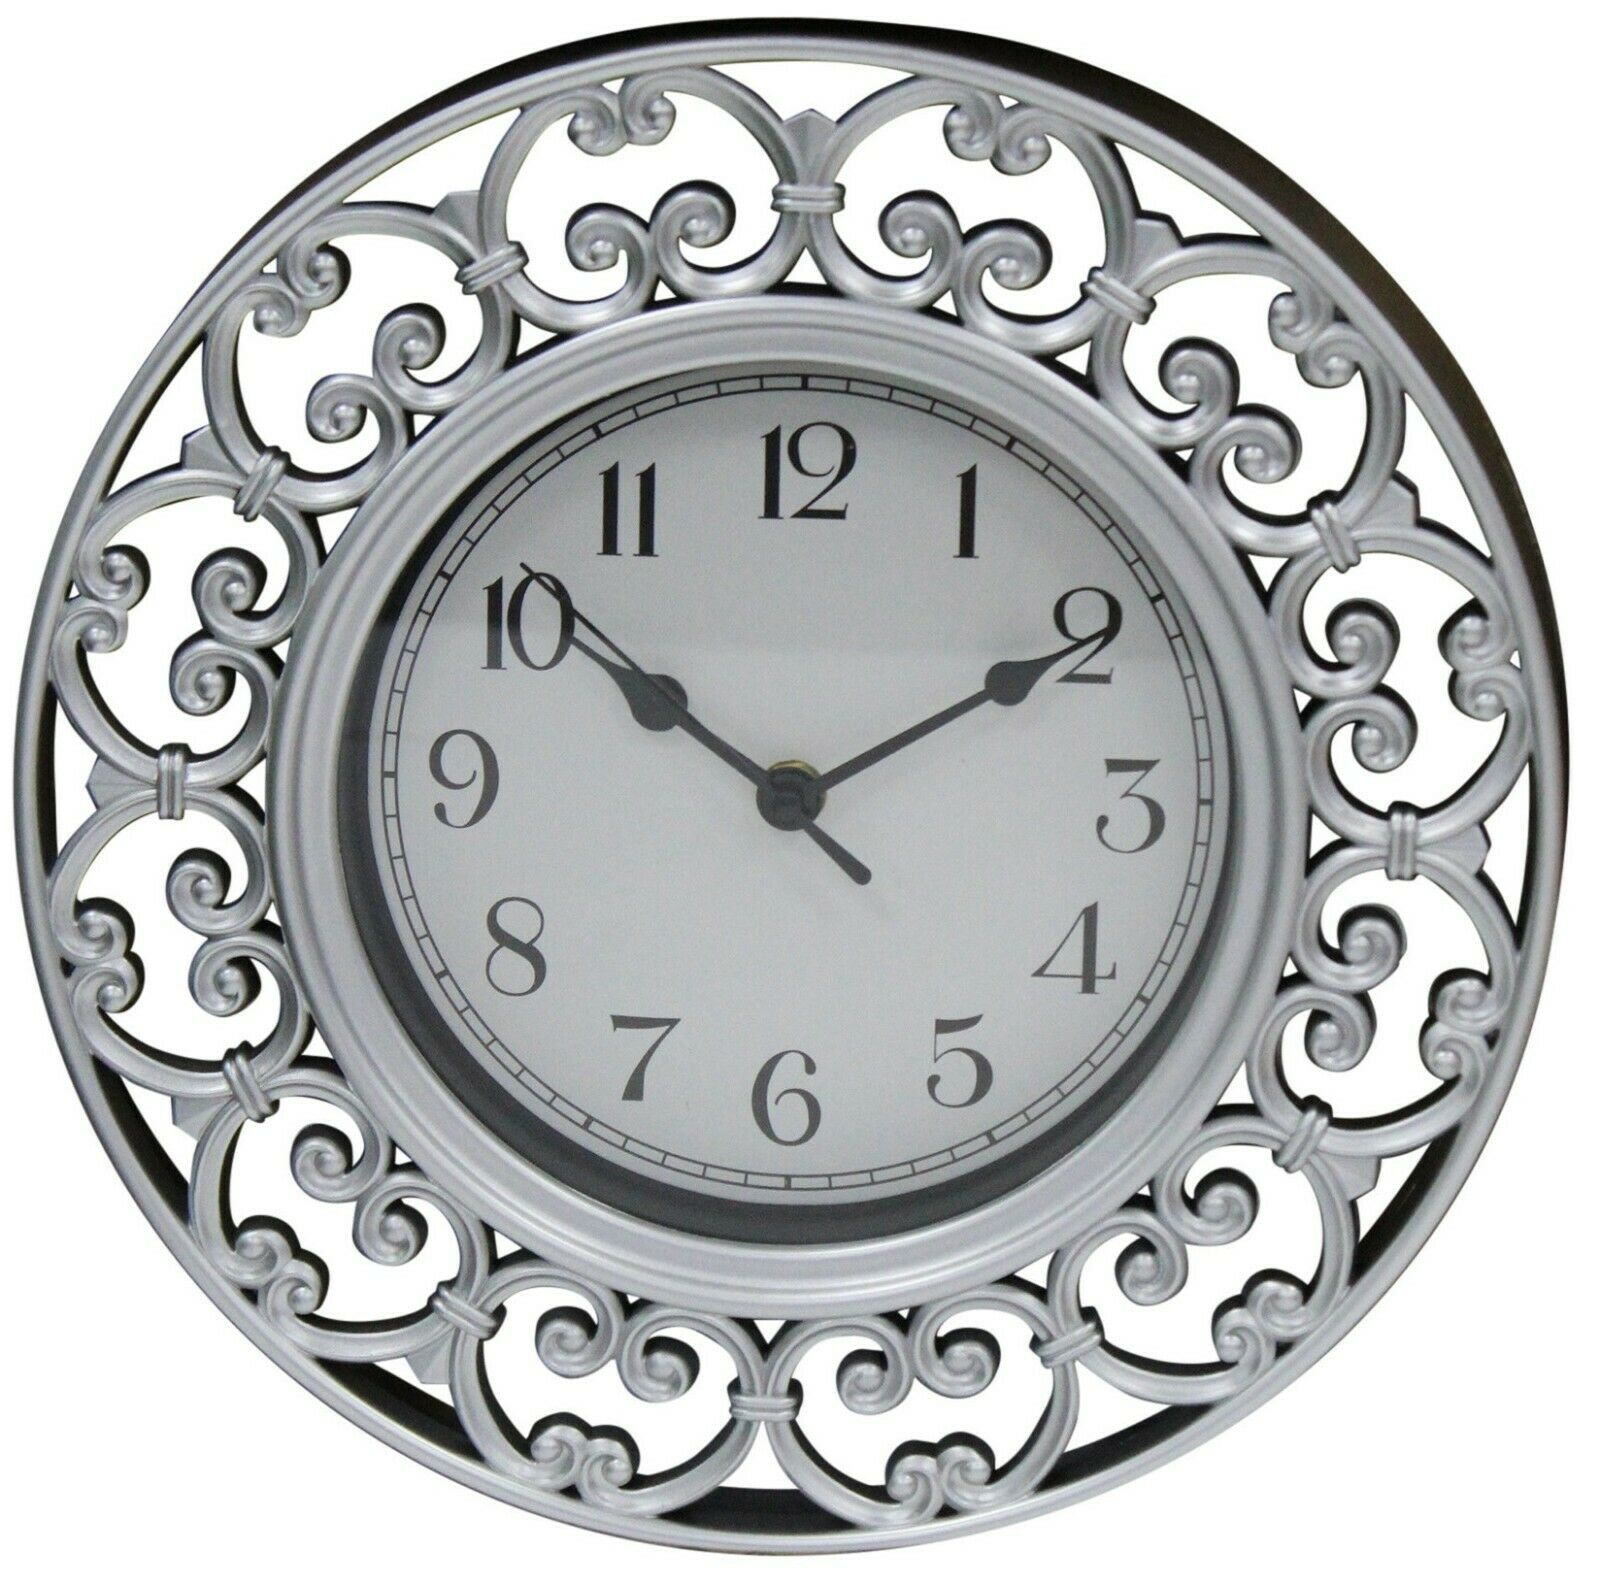 30cm Round Silver Wall Clock Antique Design Thick Frame